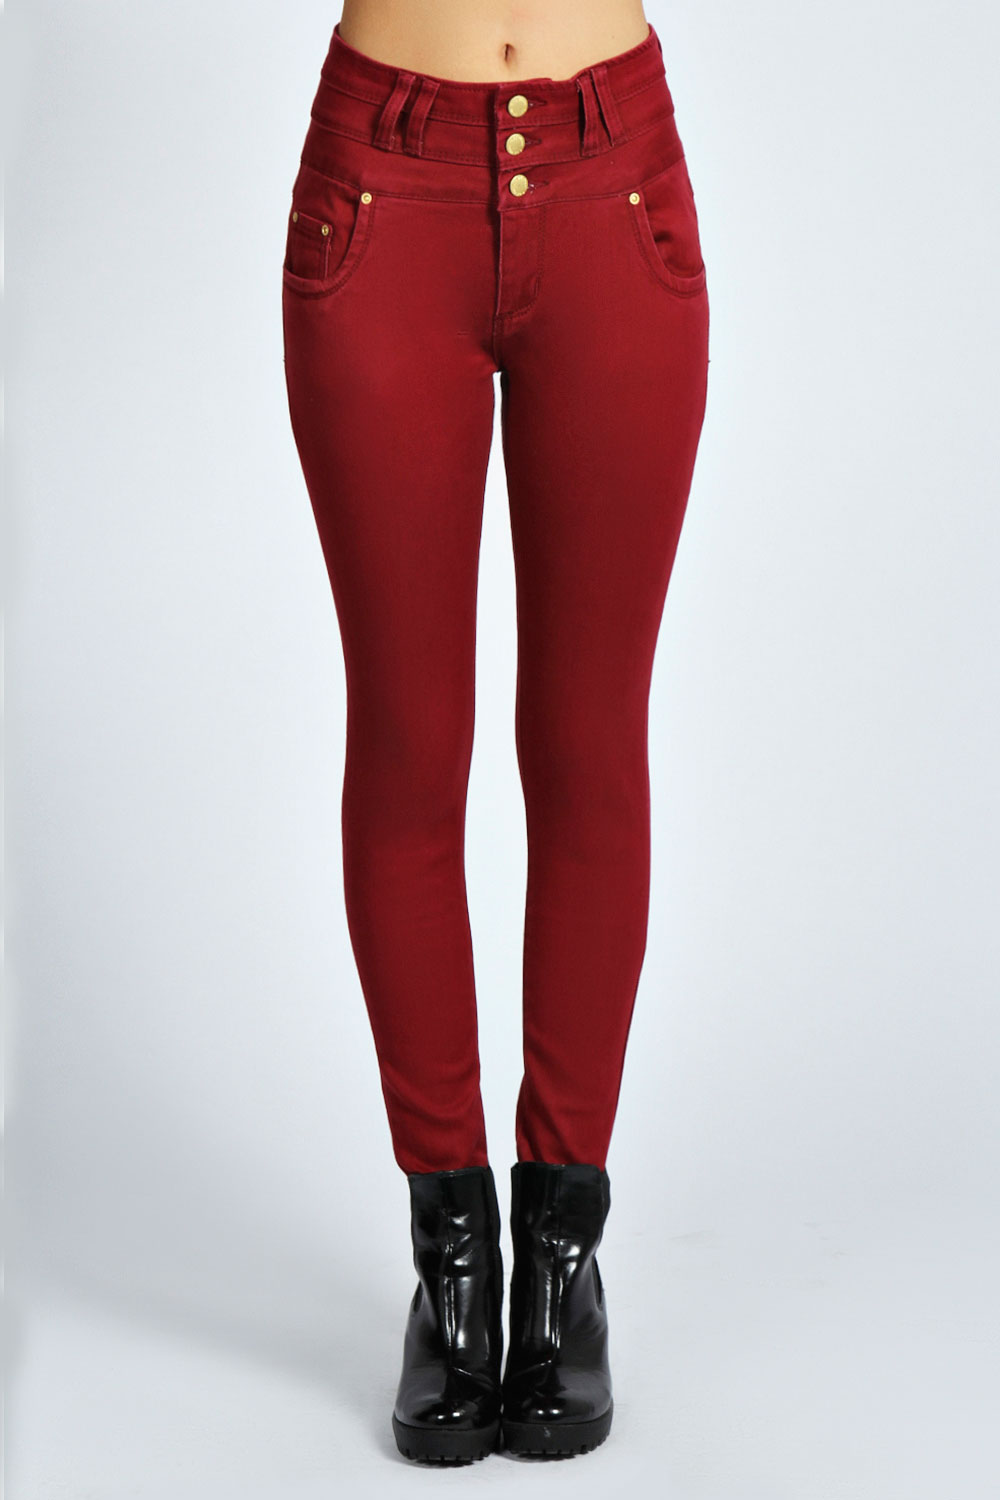 Shop women's skinny jeans at cuttackfirstboutique.cf Discover a stylish selection of the latest brand name and designer fashions all at a great value.